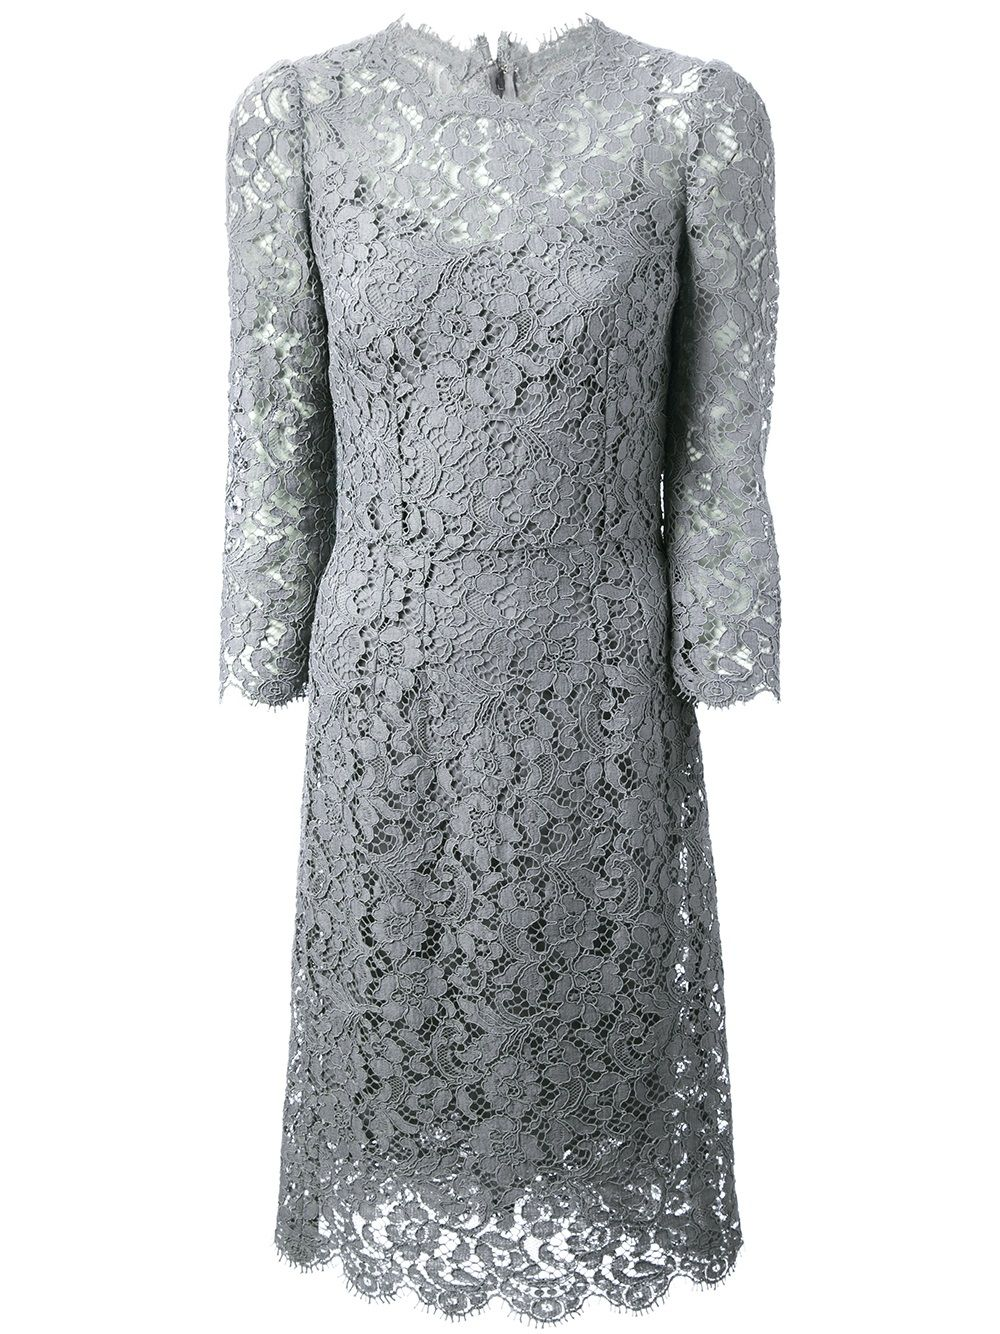 Lace dress gray  Image result for dolce and gabbana grey lace dress  fashion